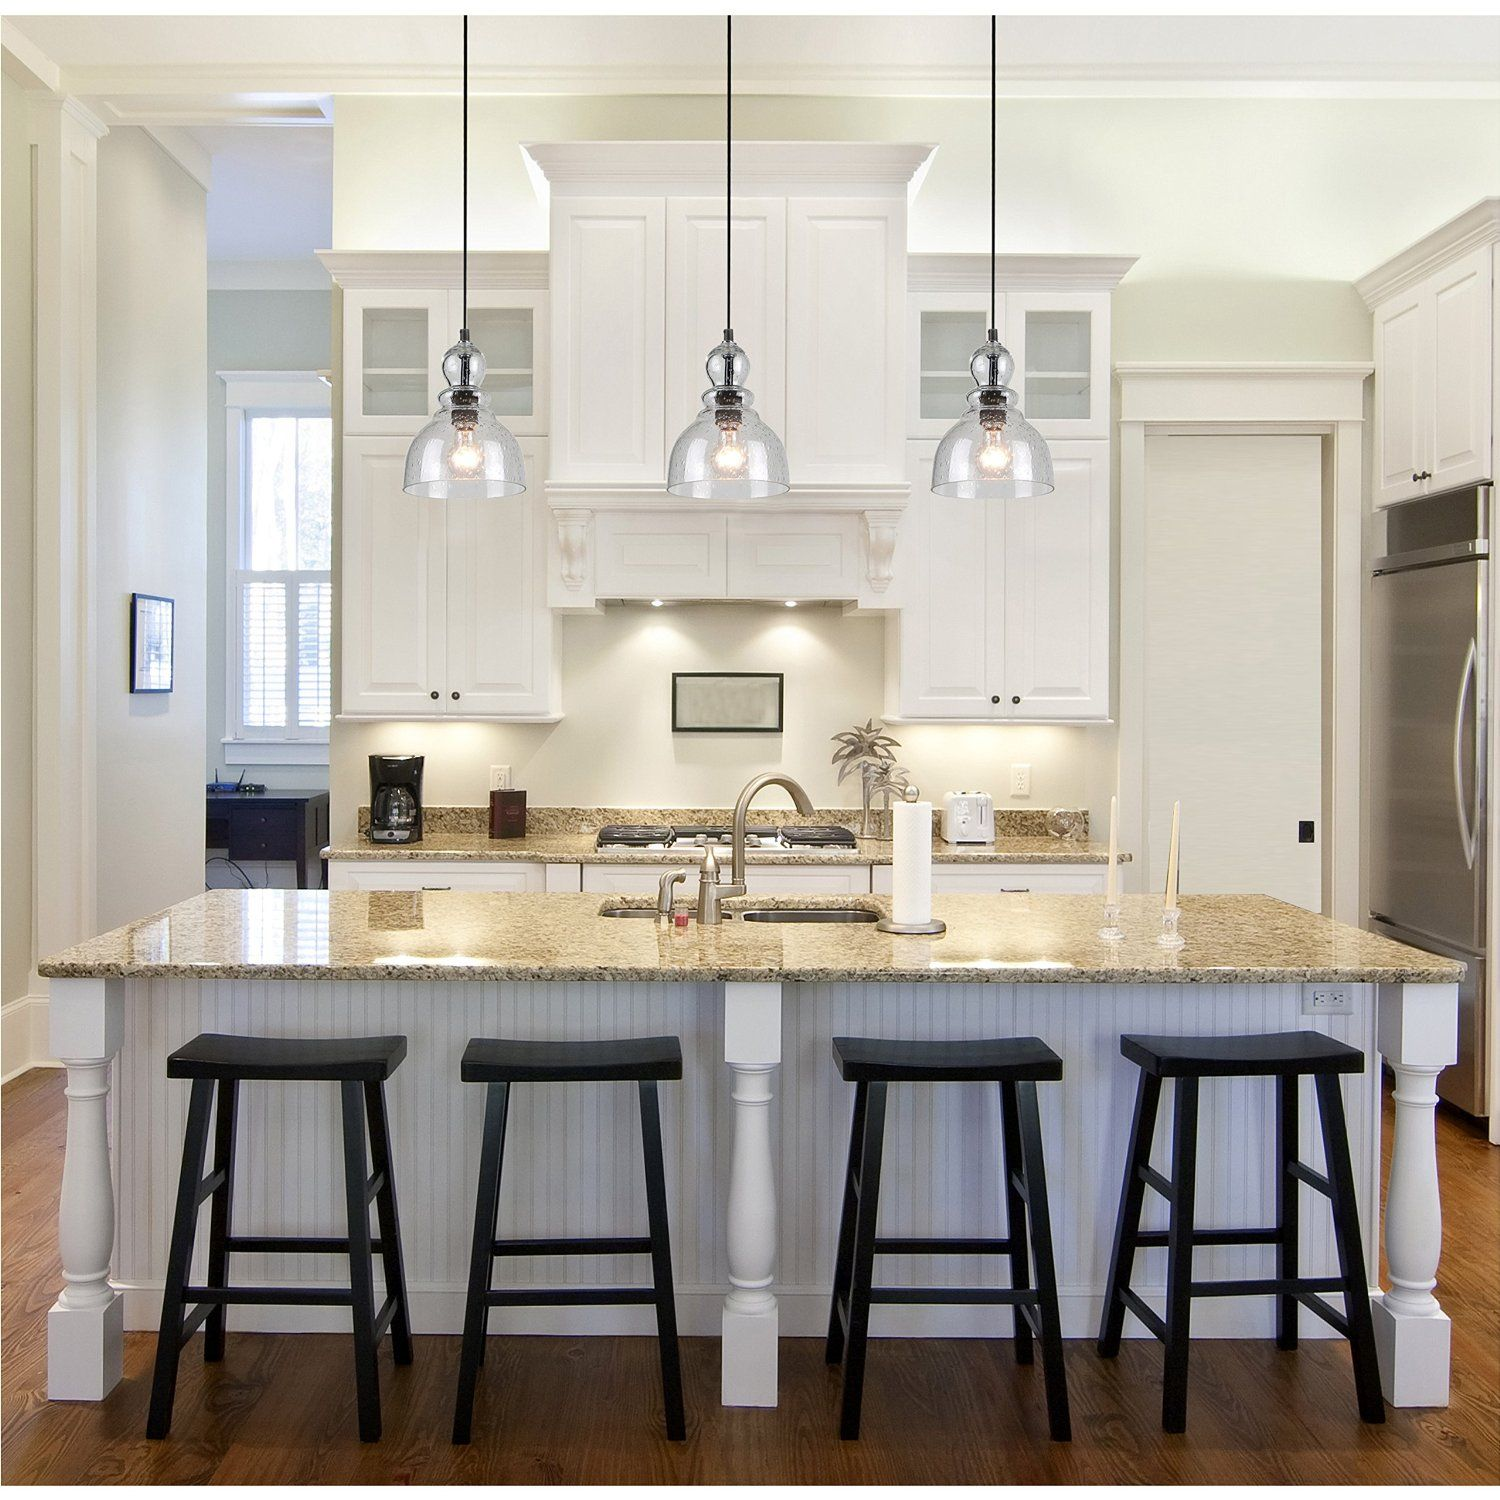 Pendant Lights For Kitchen Sink: Amazon.com: Westinghouse 6100800 Industrial One-Light